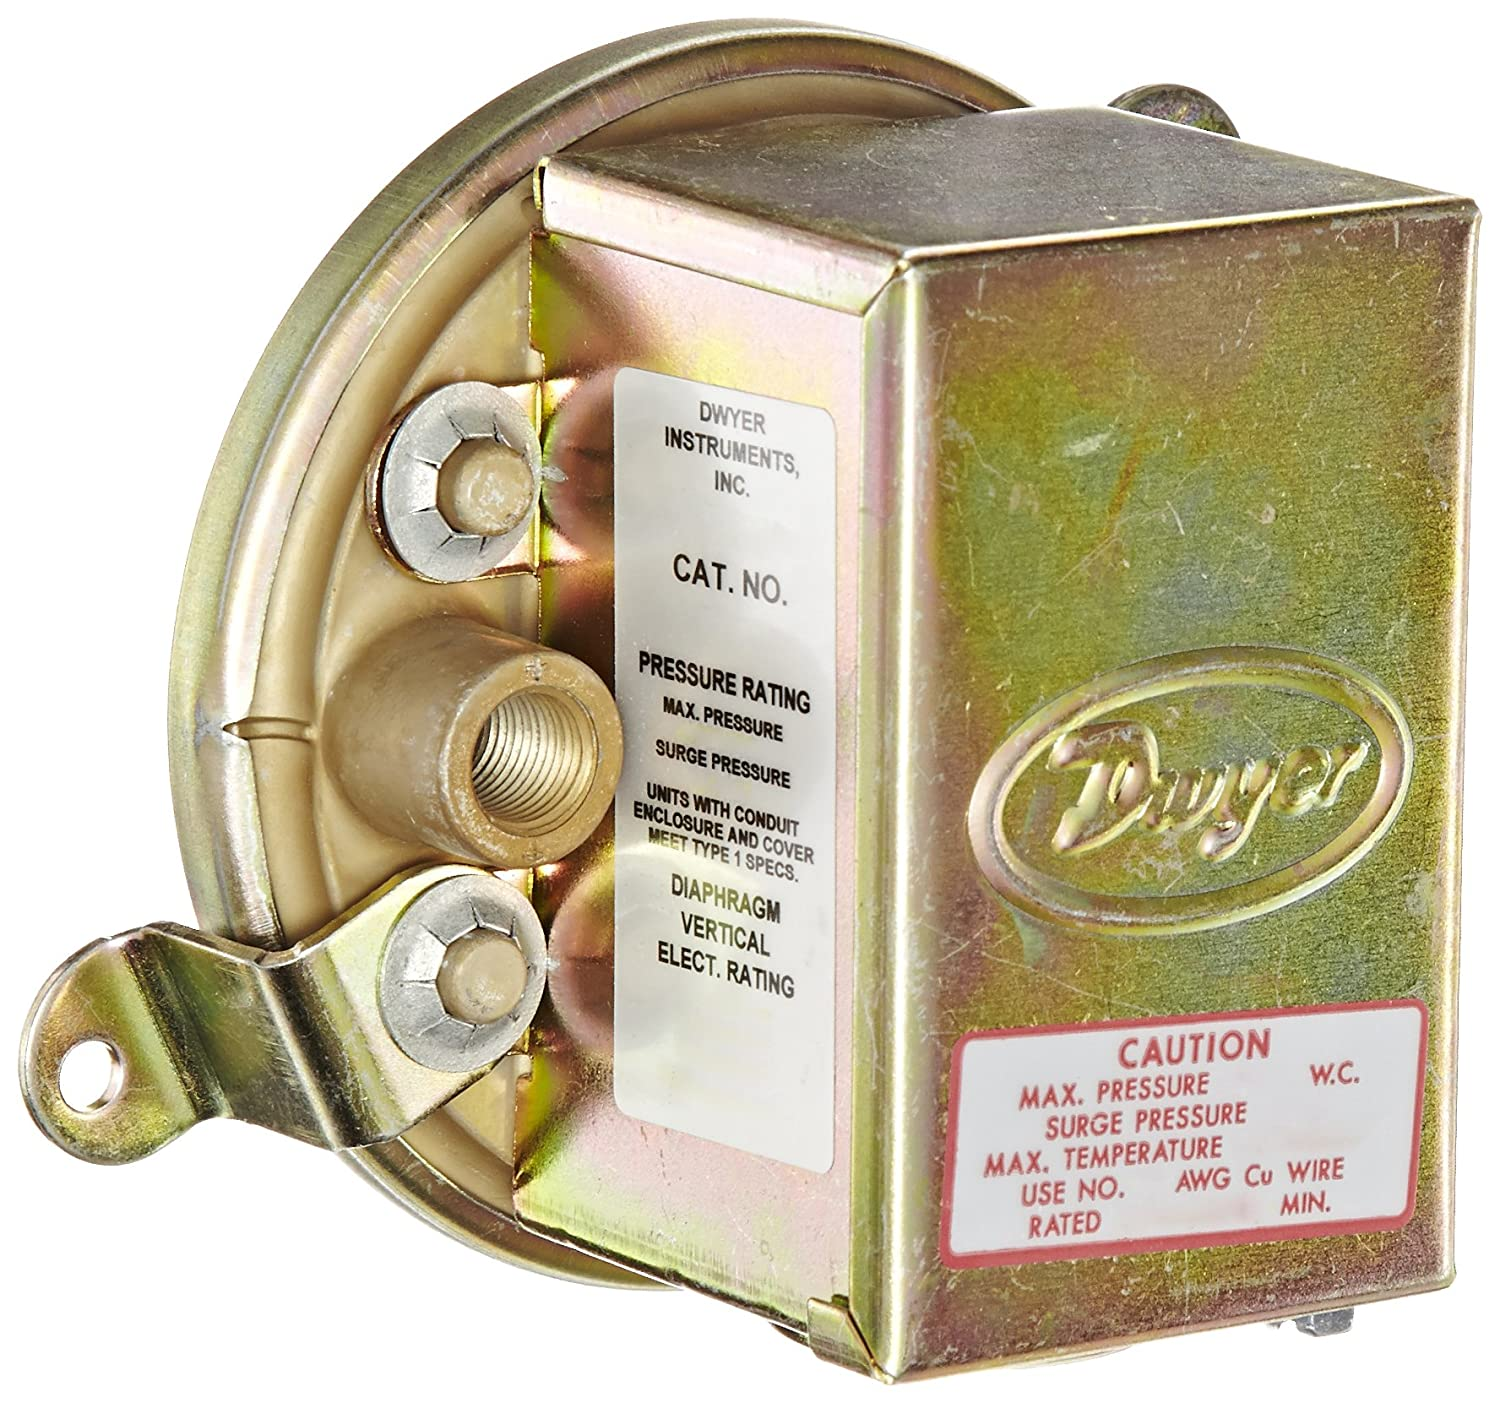 Dwyer Series 1900 Compact Low Differential Pressure Switch with Conduit Range 0.07 0.15WC